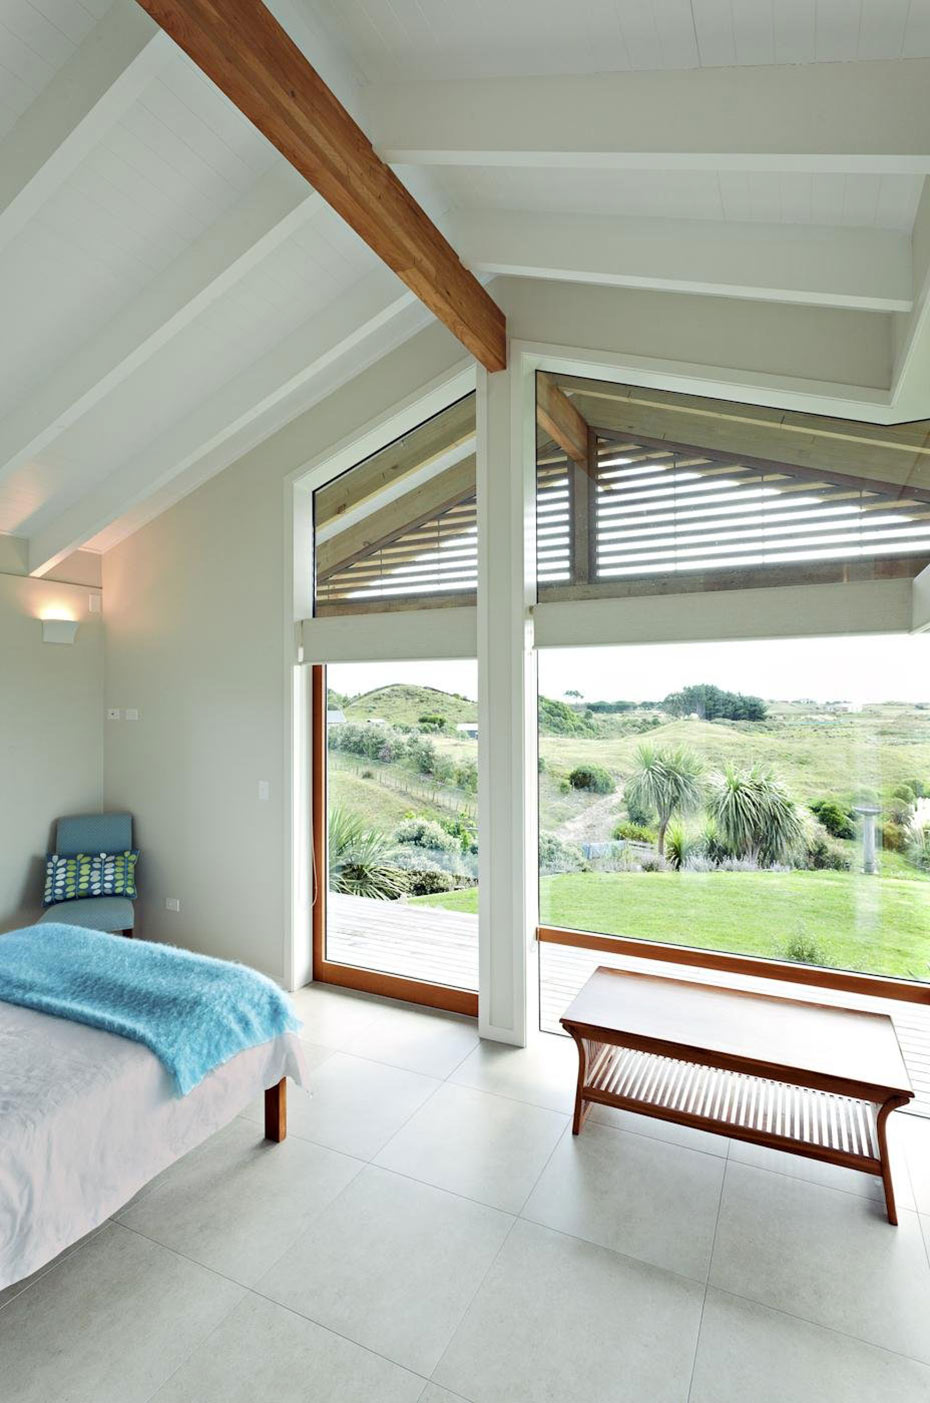 Bedroom Views, Elegant Contemporary Home in Te Horo, New Zealand